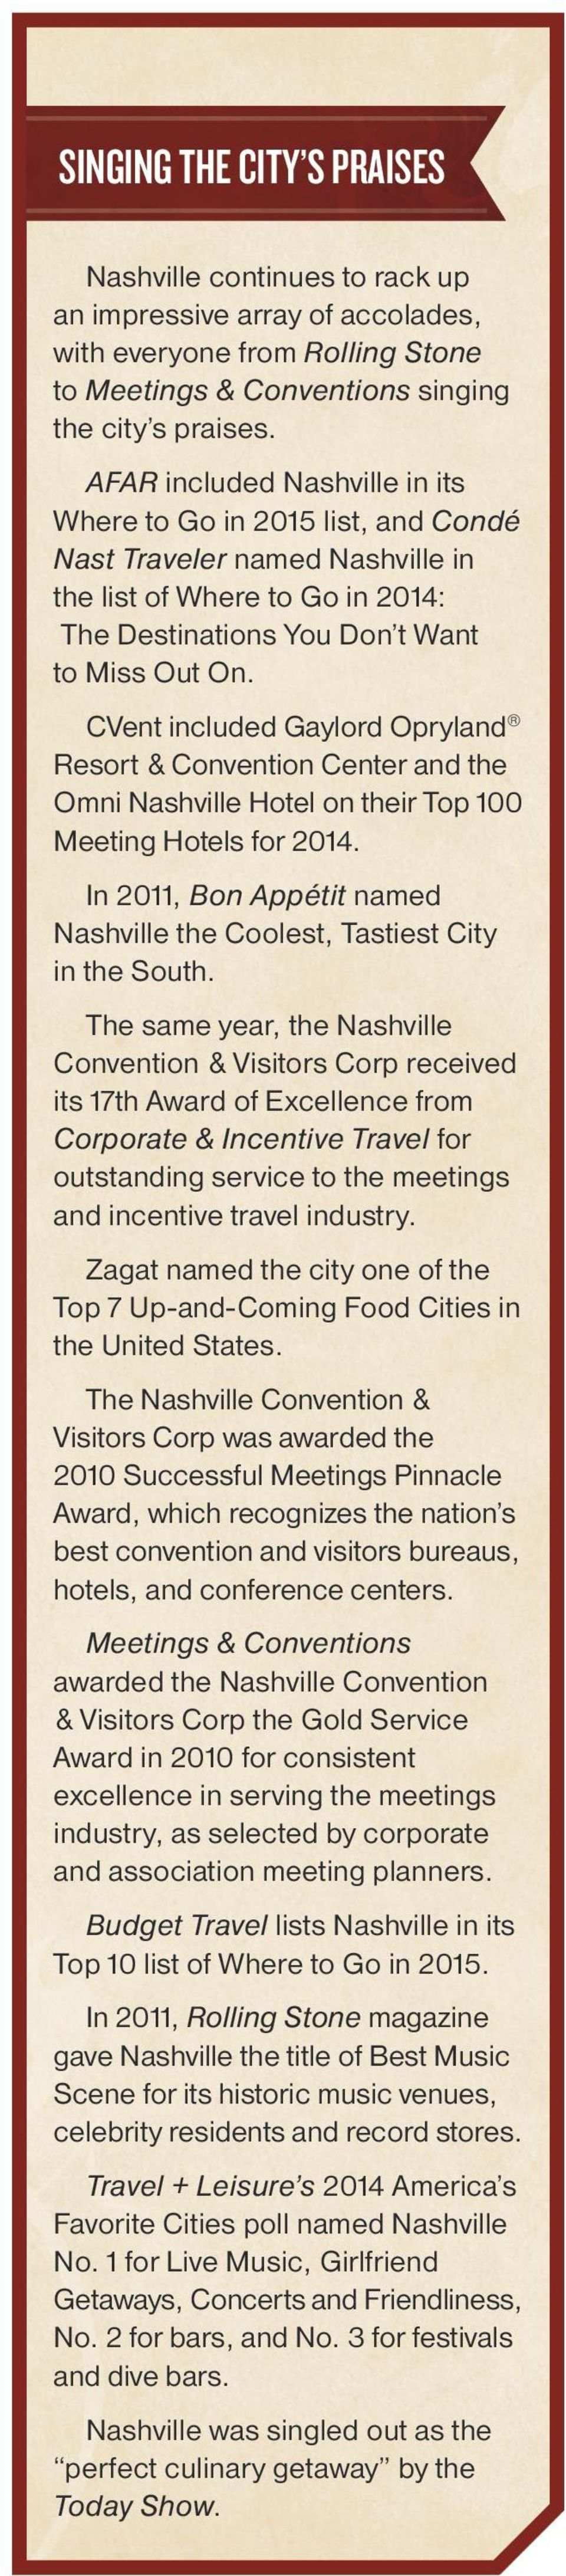 CVent included Gaylord Opryland Resort & Convention Center and the Omni Nashville Hotel on their Top 100 Meeting Hotels for 2014.